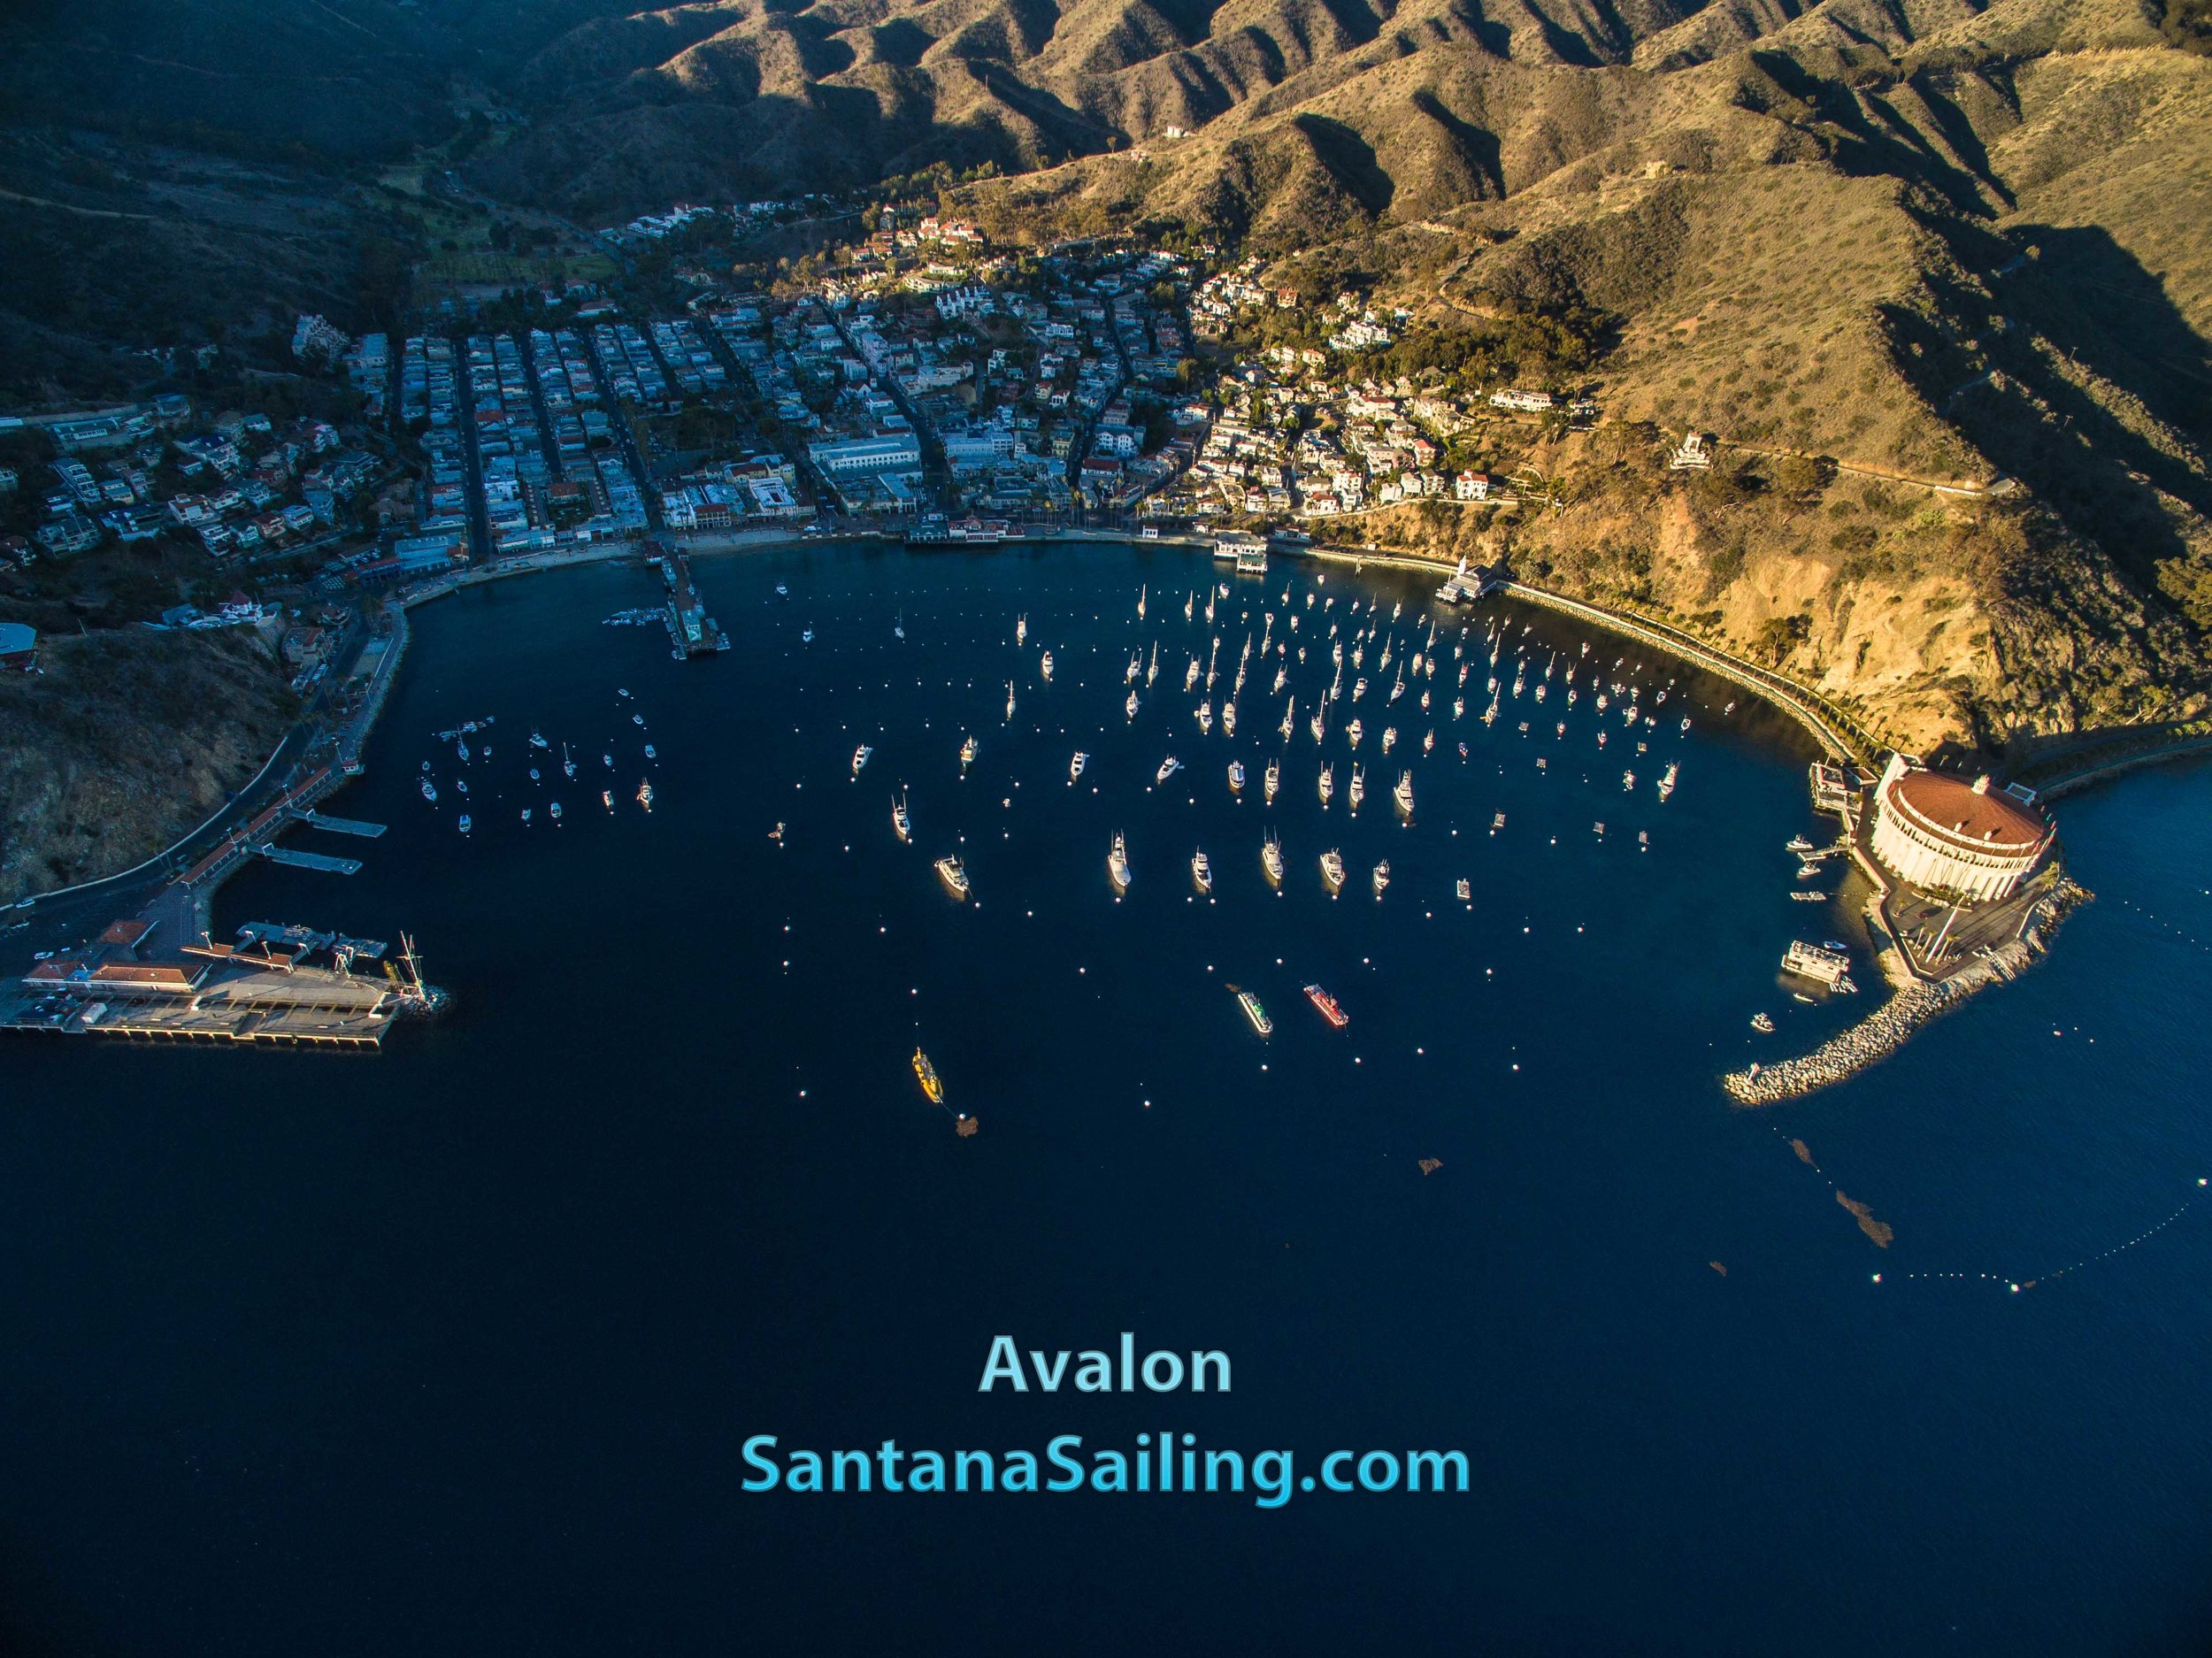 Avalon when we were sailing to catalina